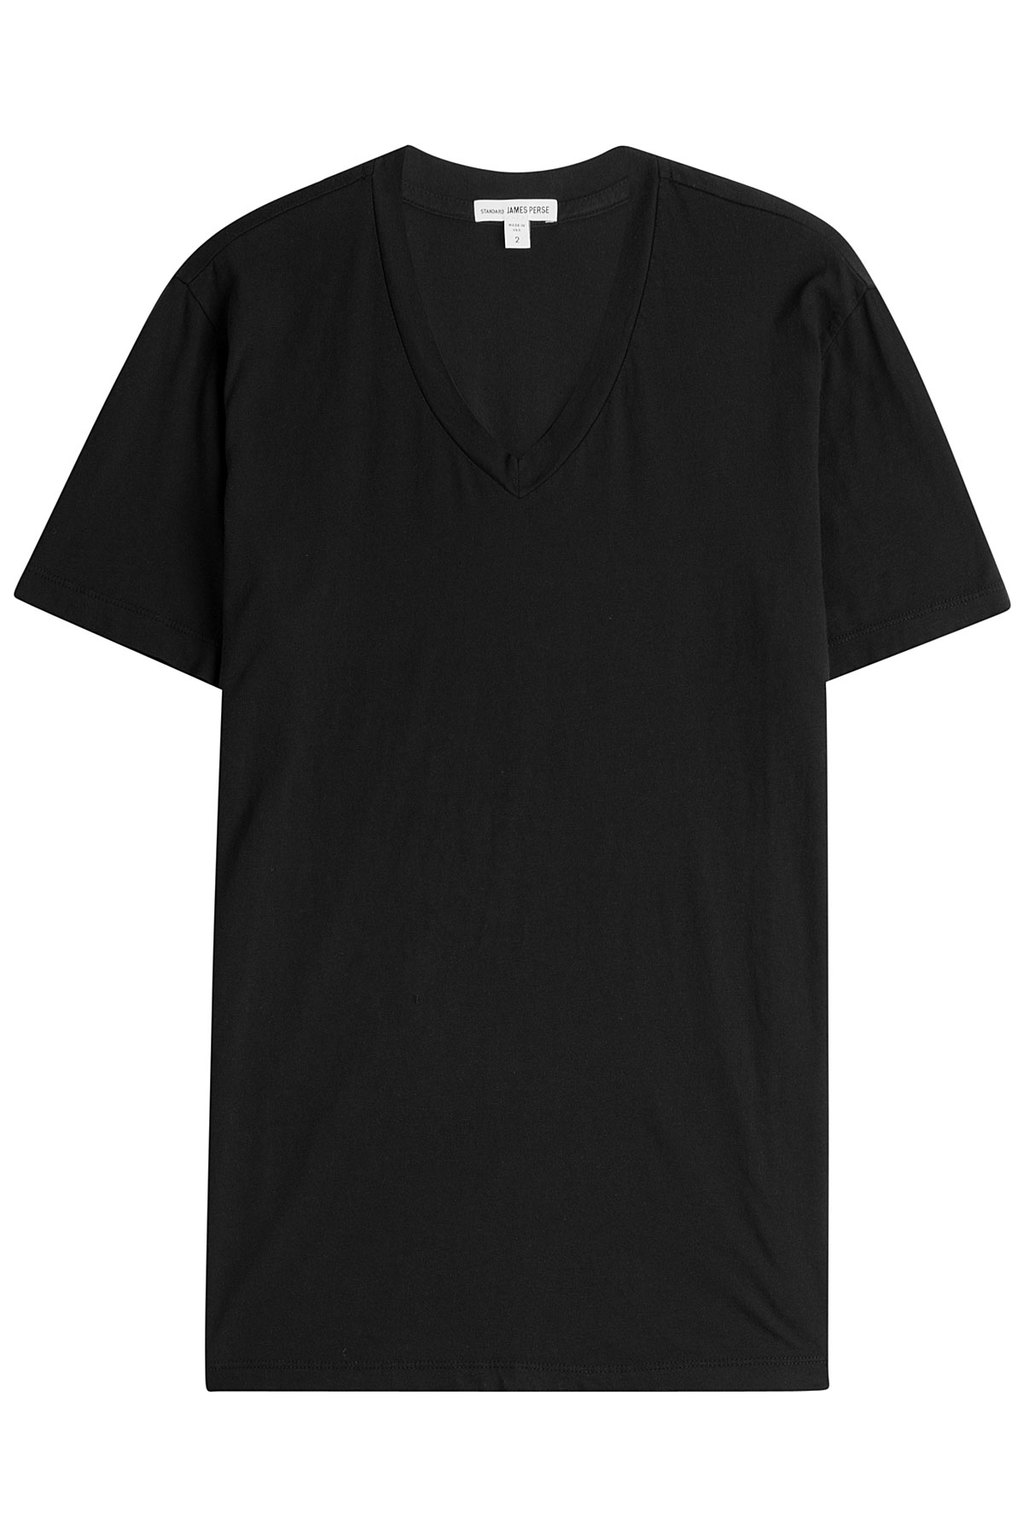 Cotton T Shirt - neckline: v-neck; pattern: plain; style: t-shirt; predominant colour: black; occasions: casual; length: standard; fibres: viscose/rayon - 100%; fit: body skimming; sleeve length: short sleeve; sleeve style: standard; pattern type: fabric; texture group: jersey - stretchy/drapey; season: s/s 2016; wardrobe: basic